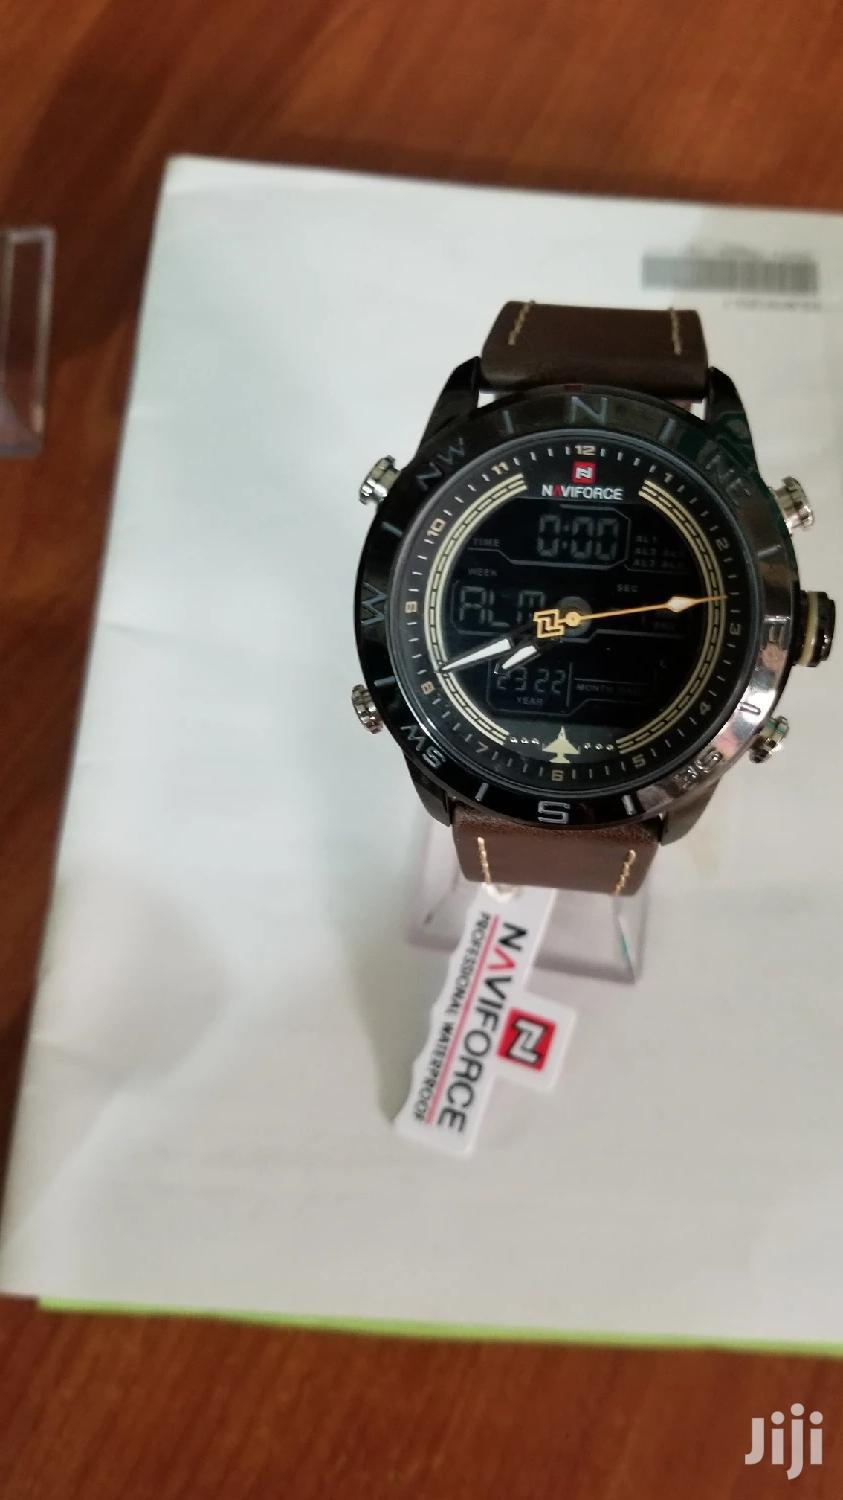 Naviforce Watch | Watches for sale in Kampala, Central Region, Uganda